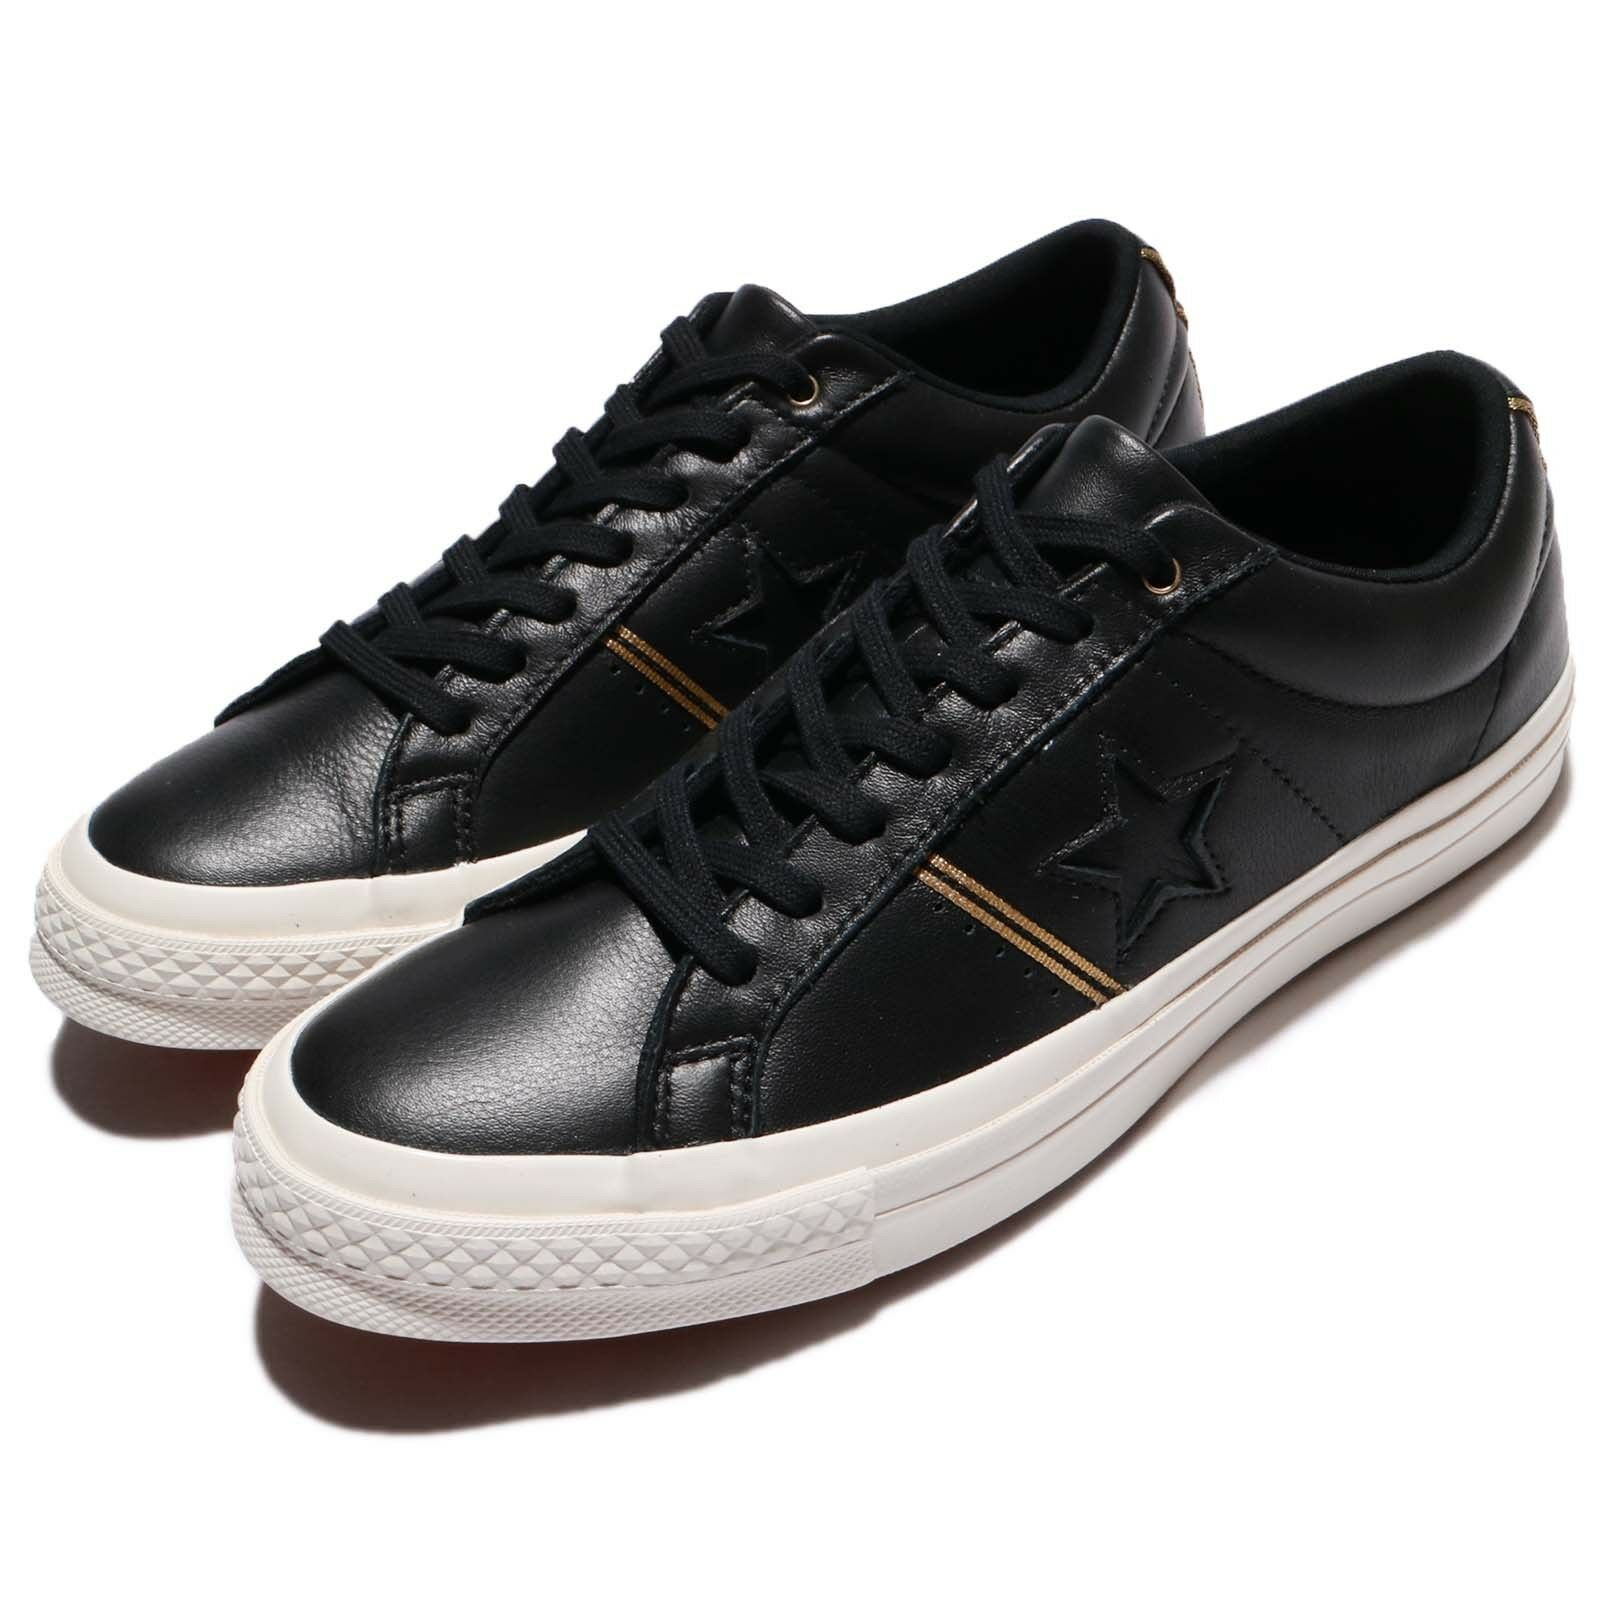 Converse One Star Leather Black gold Classic Men Women shoes Sneakers 159701C